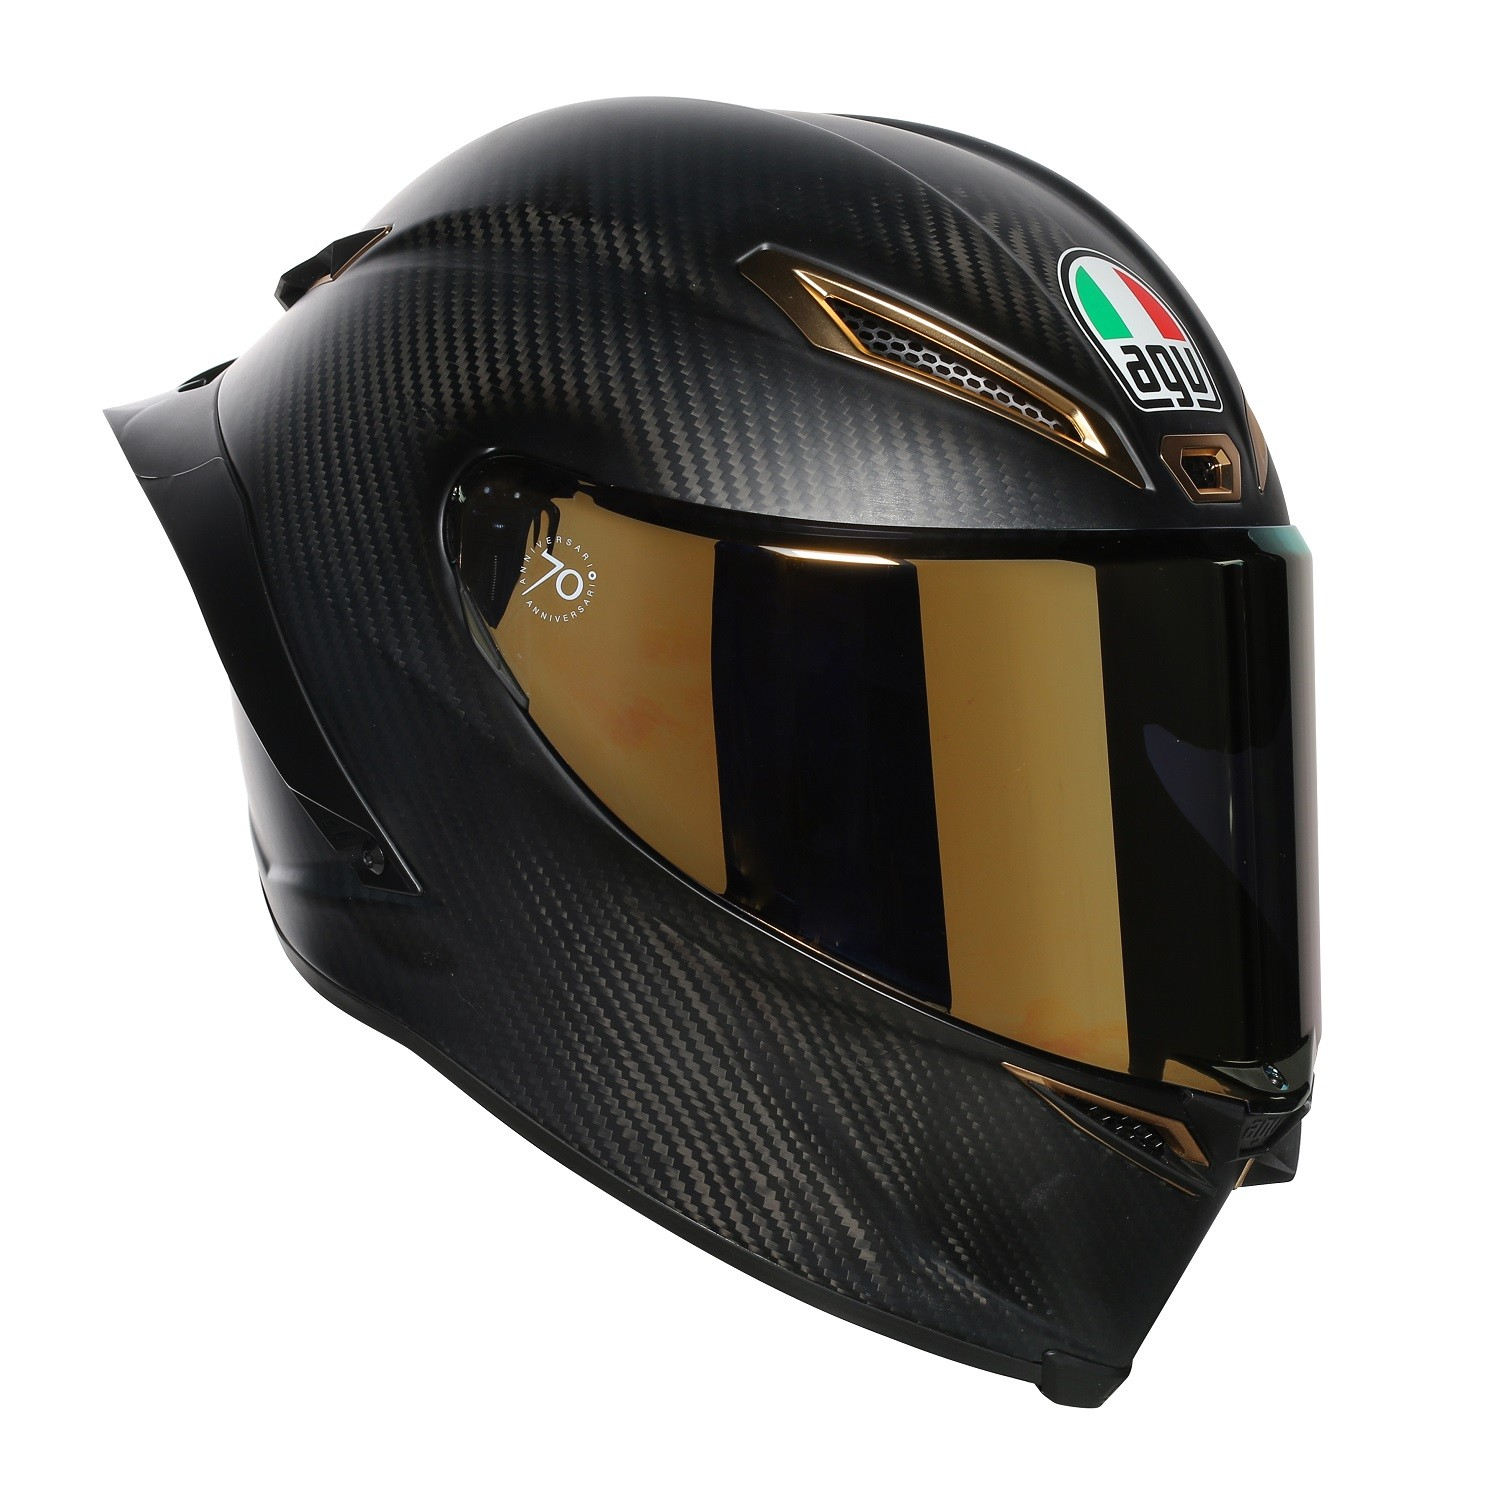 agv pista gp r anniversario. Black Bedroom Furniture Sets. Home Design Ideas